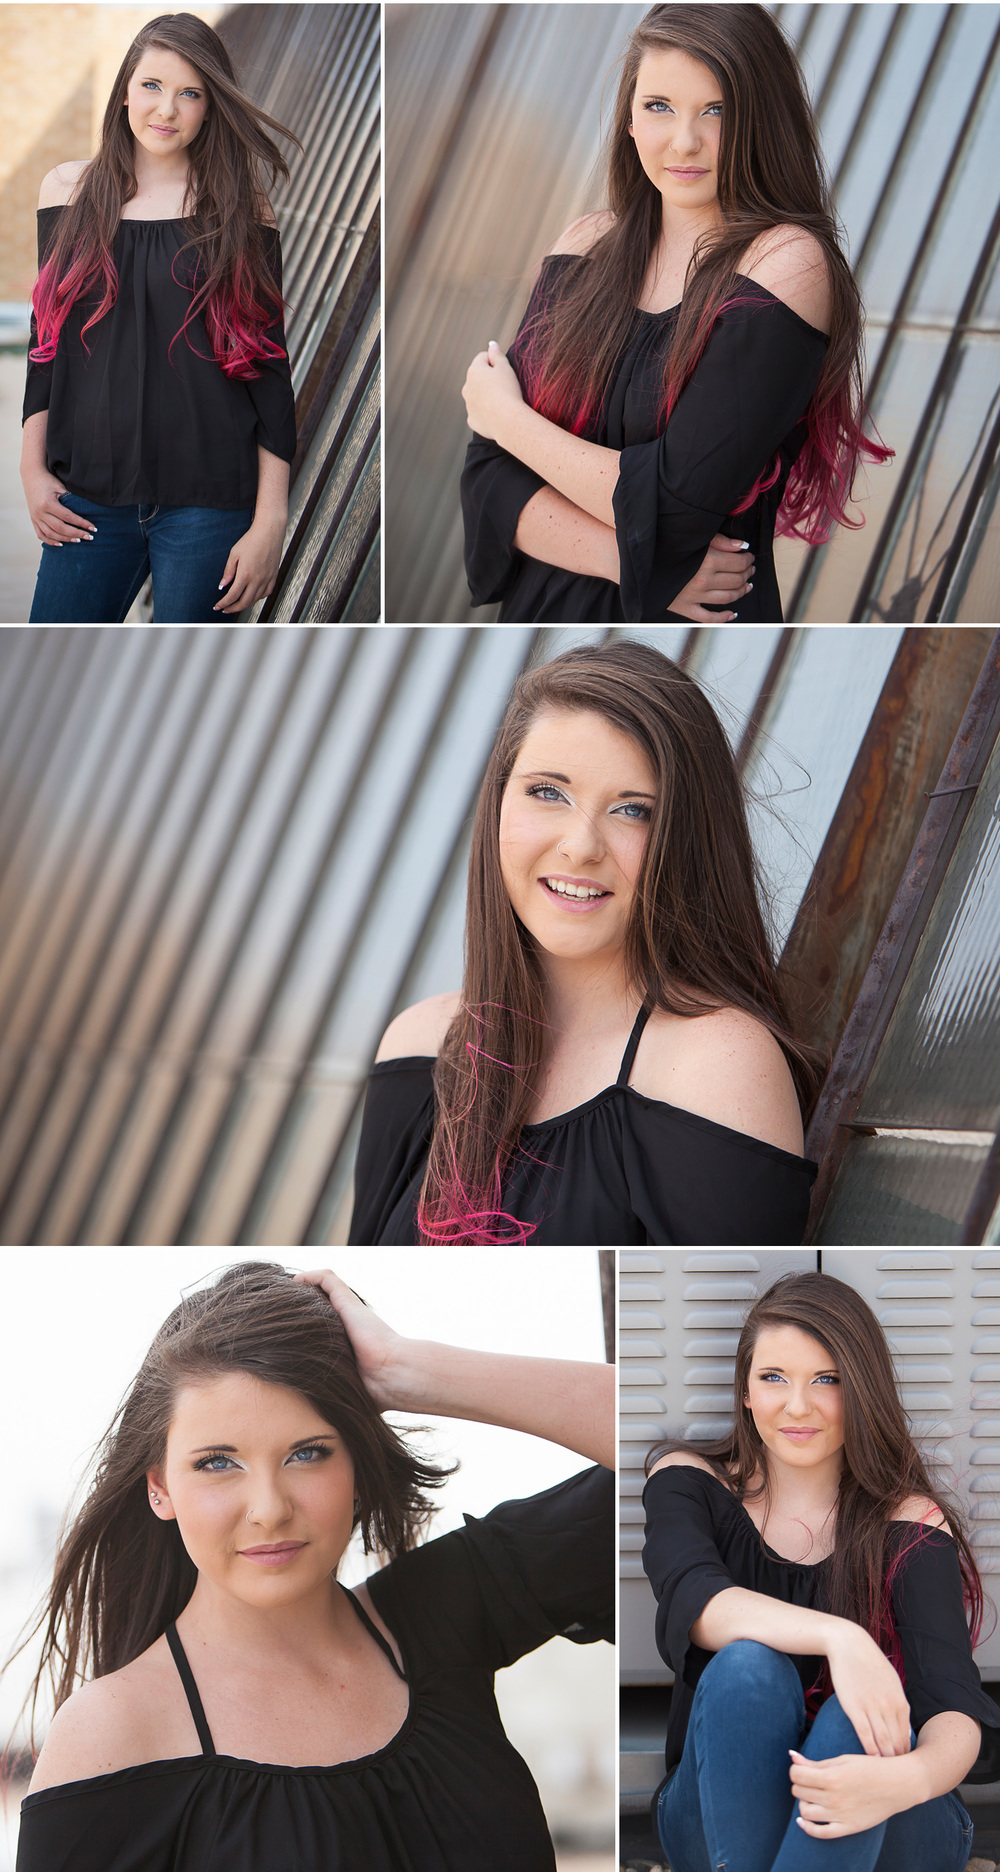 Urban Rooftop Senior Pictures in Denver with Portrait Photographer Jennifer Koskinen | Merritt Design Photo